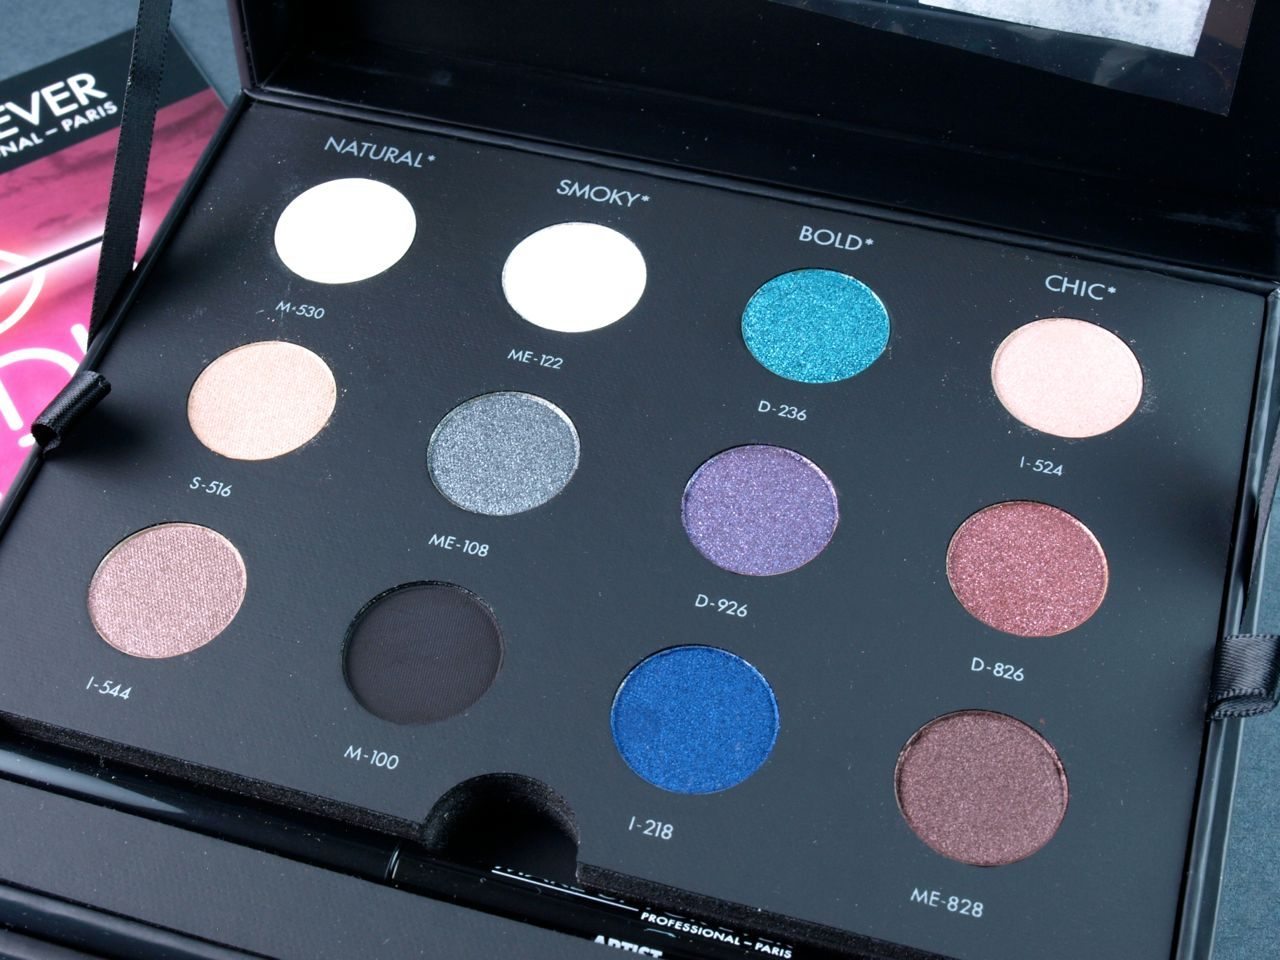 Make Up For Ever Studio Case: Review and Swatches